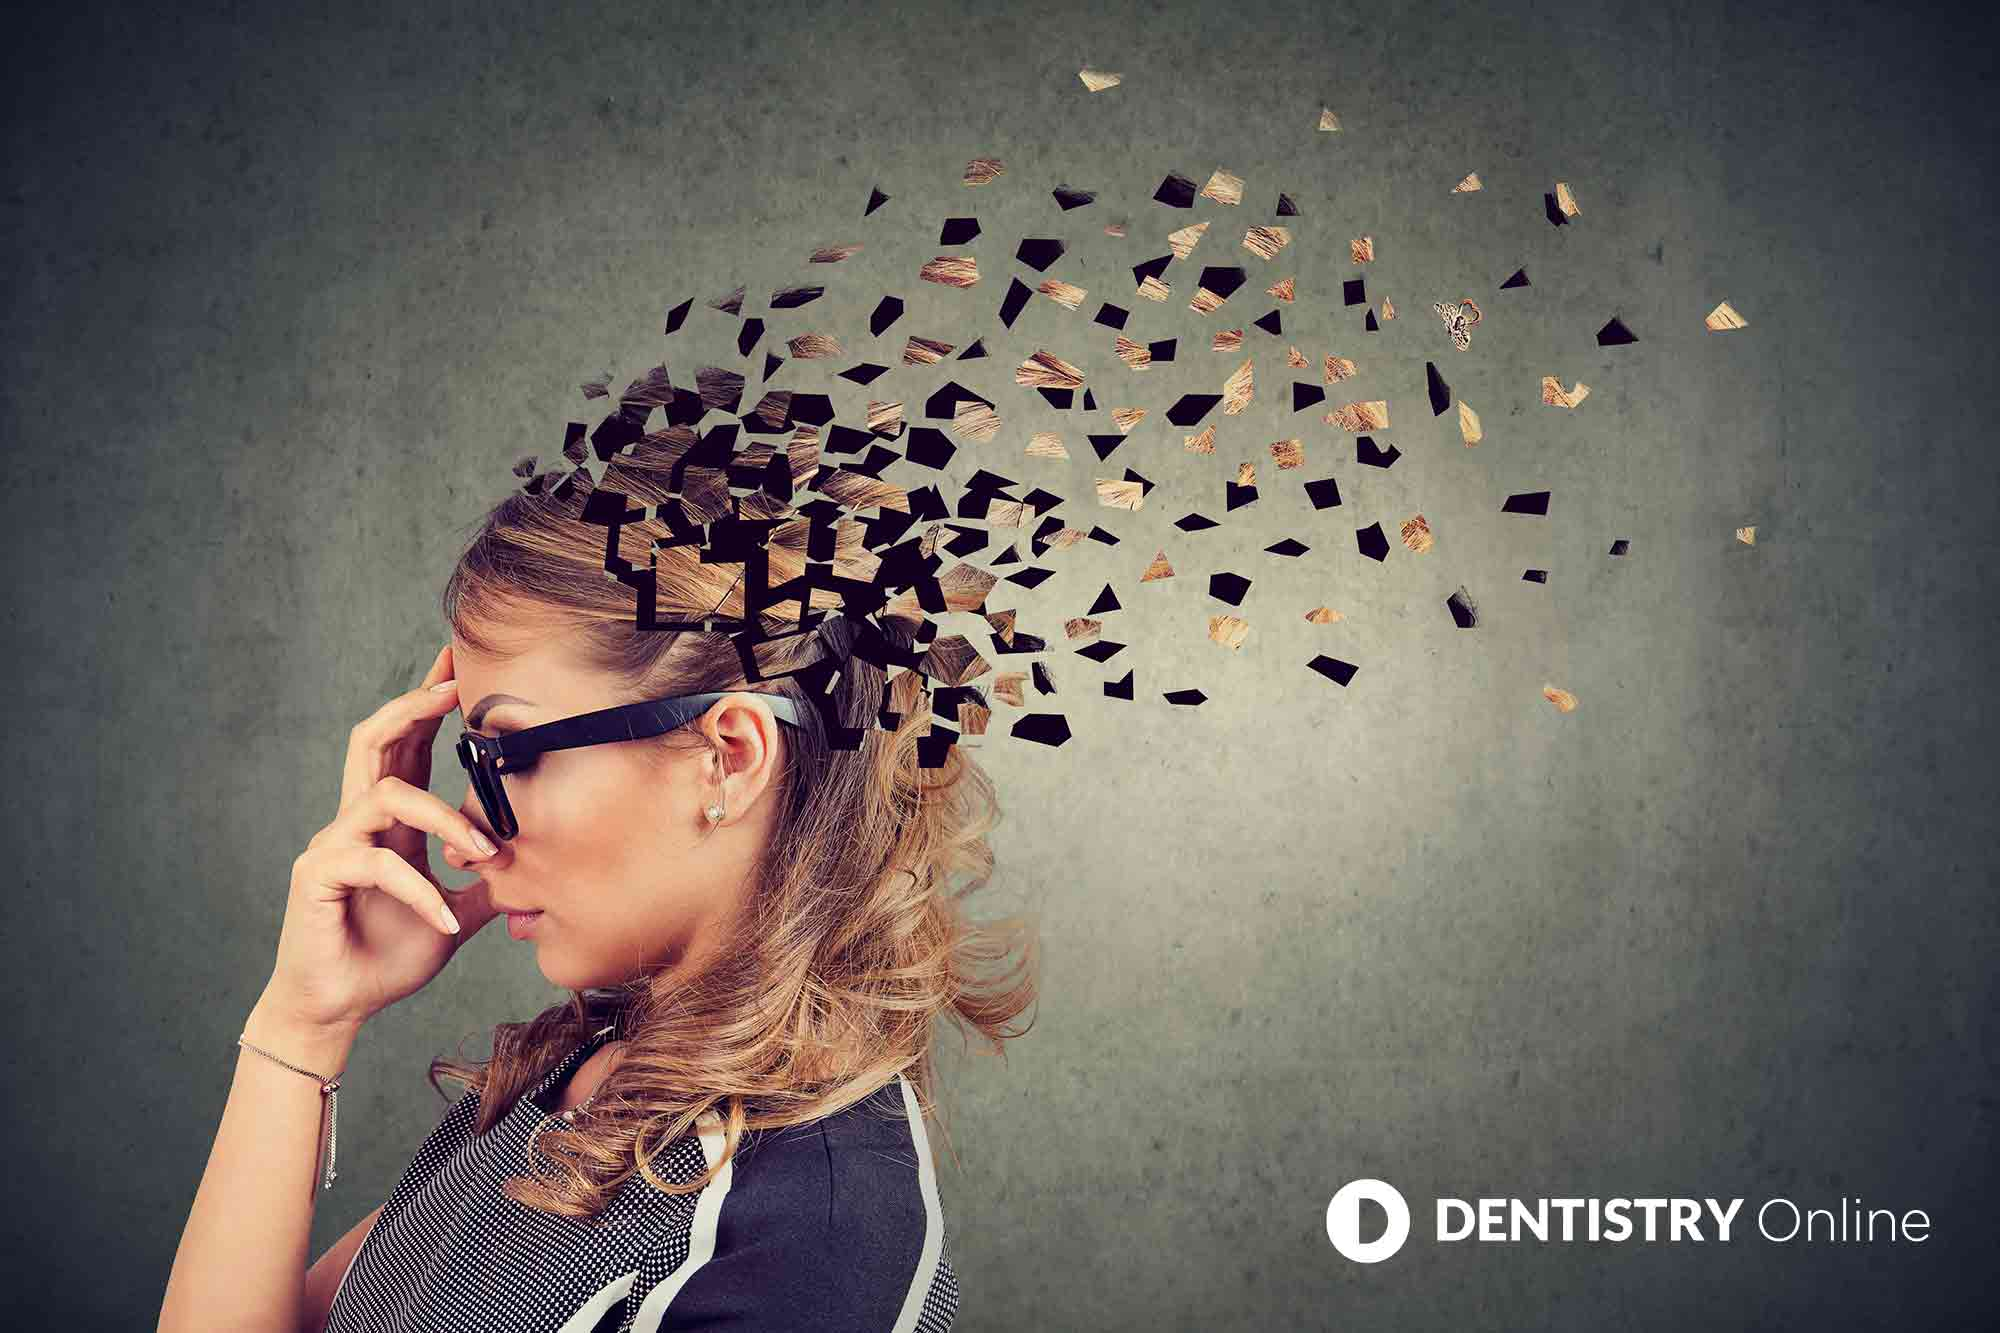 Cemal Ucer discusses the ephemeral benefits of institutional memory – and the more immediate advantages of mentors within dentistry